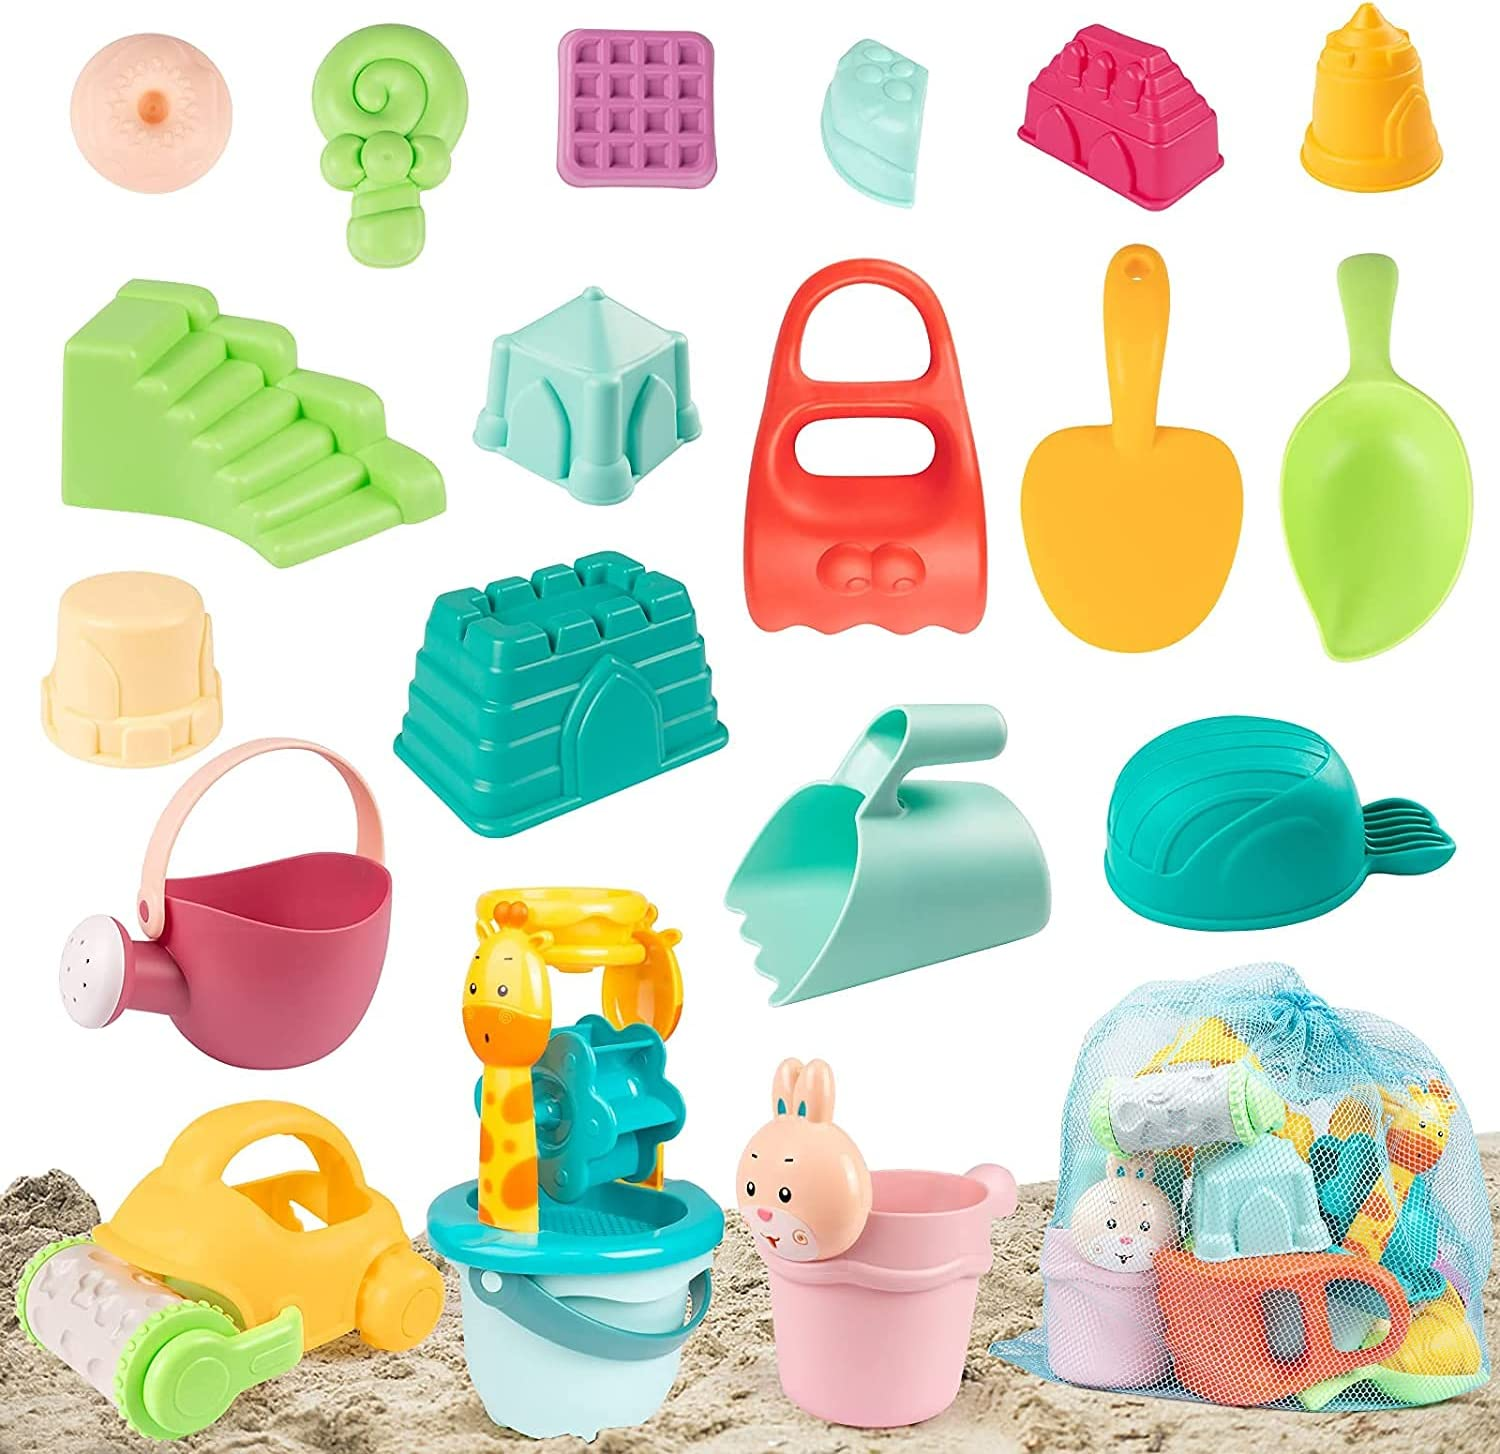 GobiDex Beach Sand Toys-27Pcs Molds Toys with Daily bargain sale Special Campaign Set